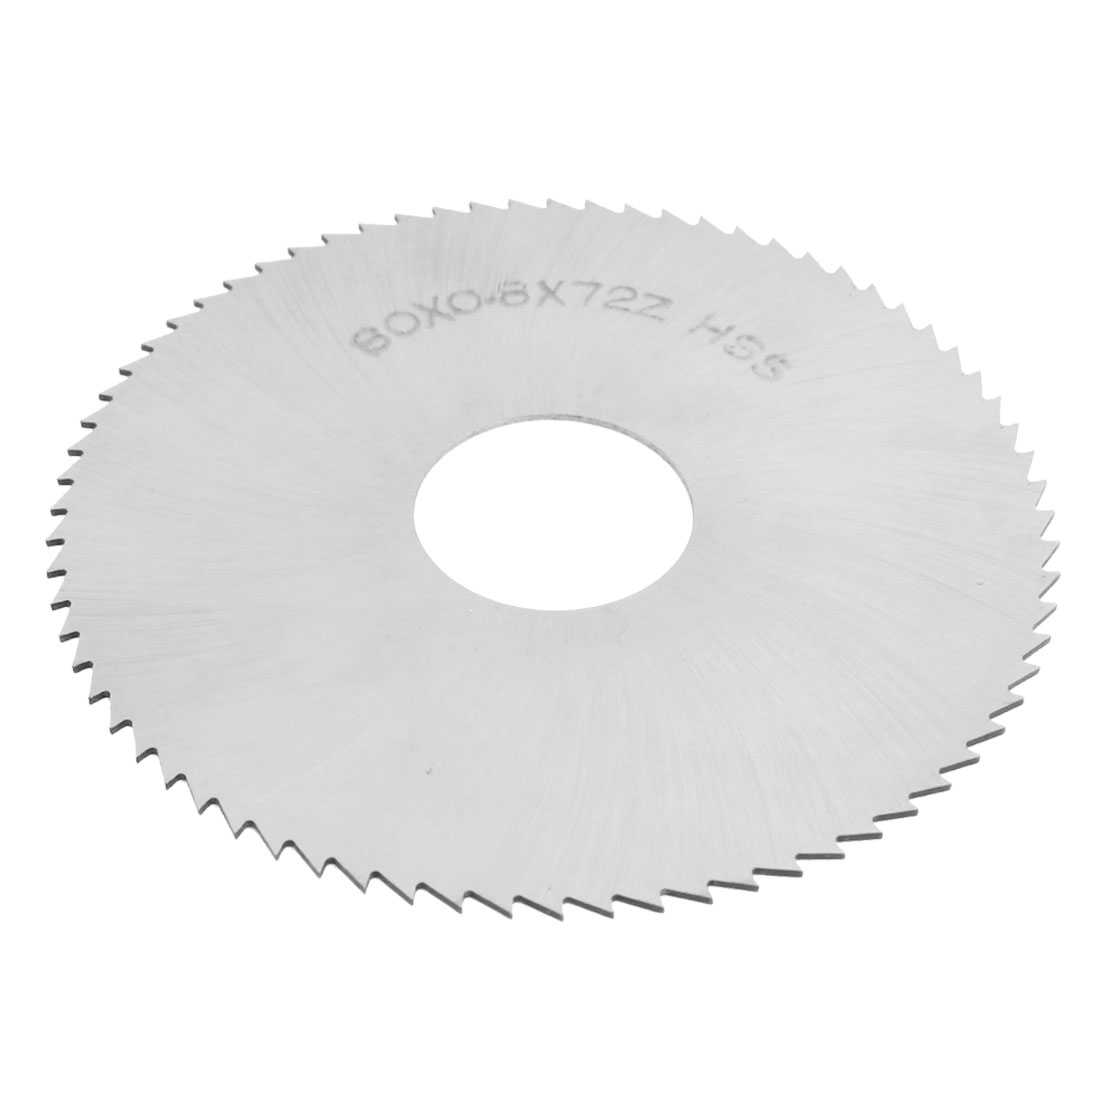 Unique Bargains Unique Bargains 80mm x 0.8mm x 22mm 72T Milling Slitting Slotting Saw Blades Mill Cutter